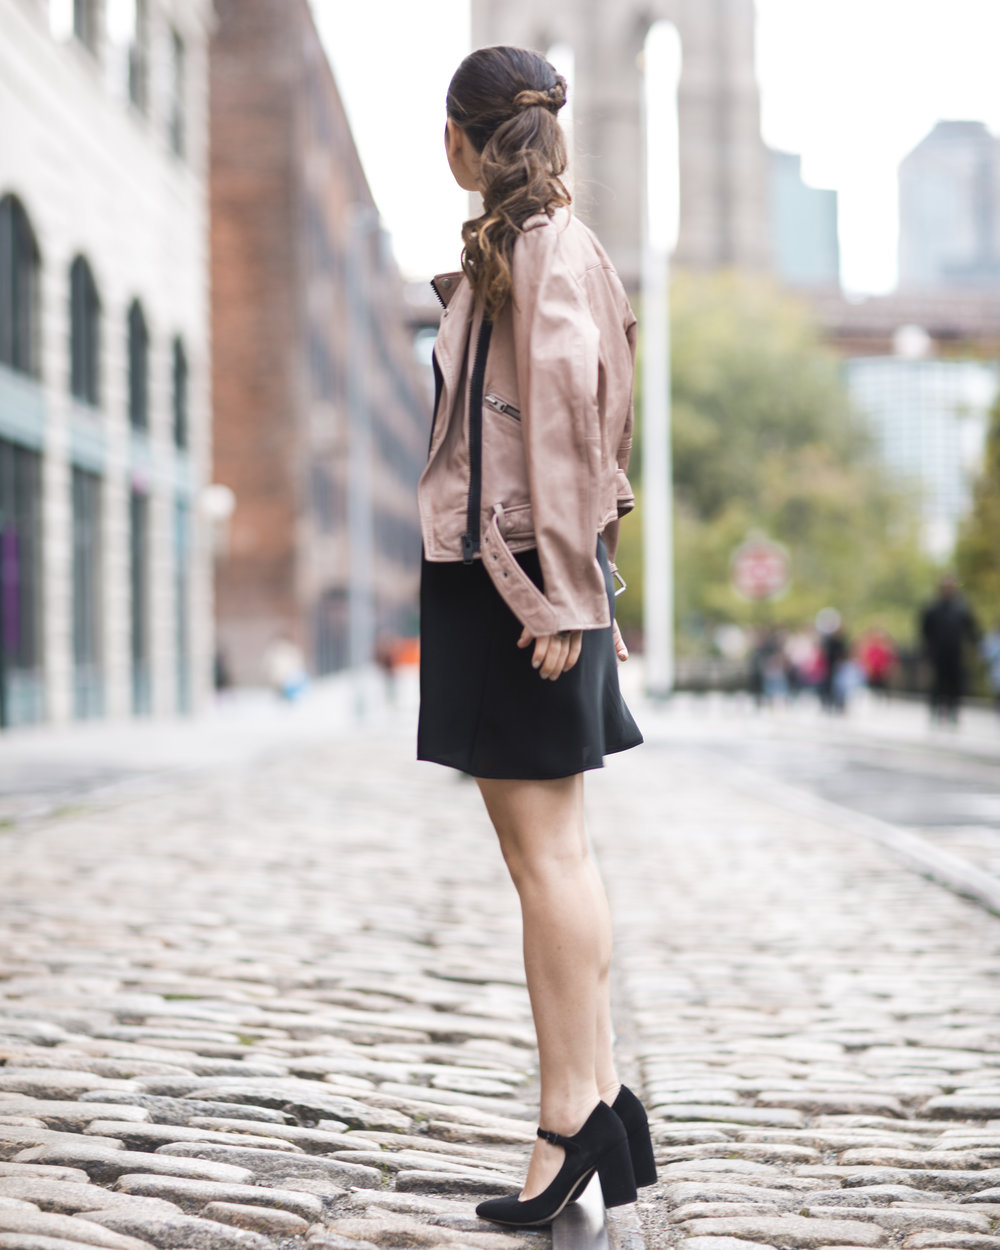 Pink Leather Jacket Erin Dana Choker Louboutins & Love Fashion Blog Esther Santer NYC Street Style Blogger Outfit OOTD Trendy All Saints Hair Inspo Fall Look Via Spiga Black Shoes Bloomingdales Slip Dress Pretty Model Women Girl Dumbo Shop Accessories.jpg